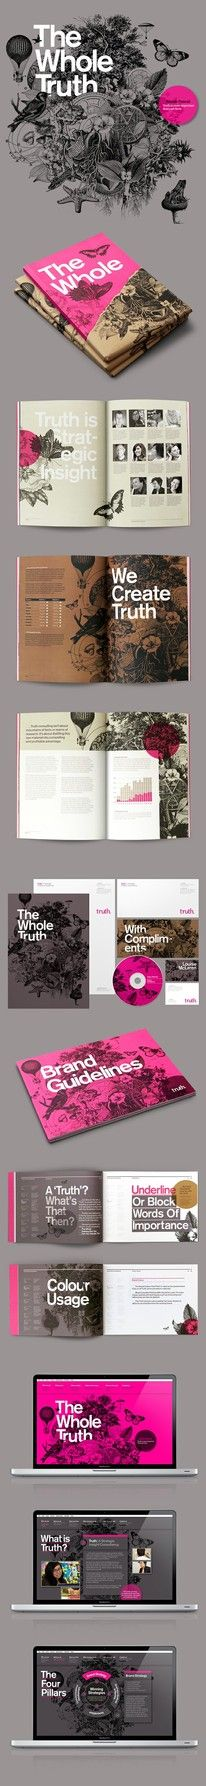 General / Truth Branding by Socio Design — Designspiration